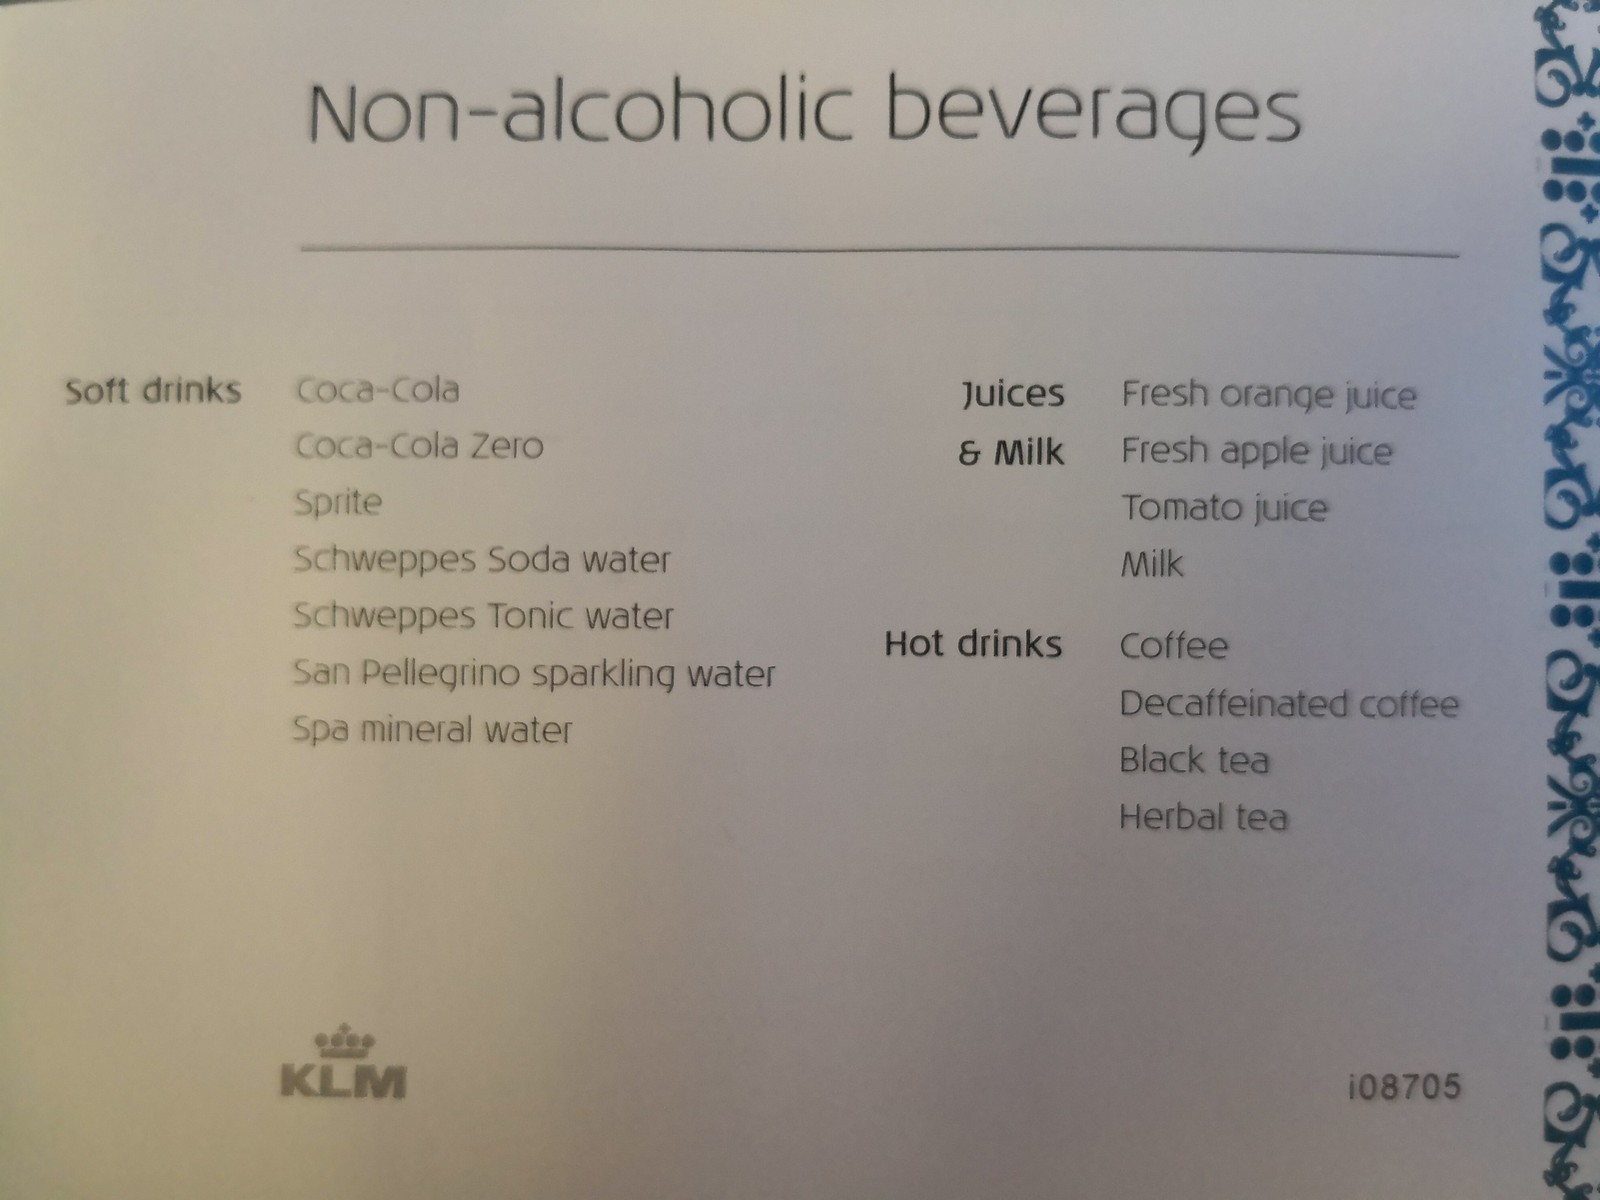 Non-alcoholic beverages